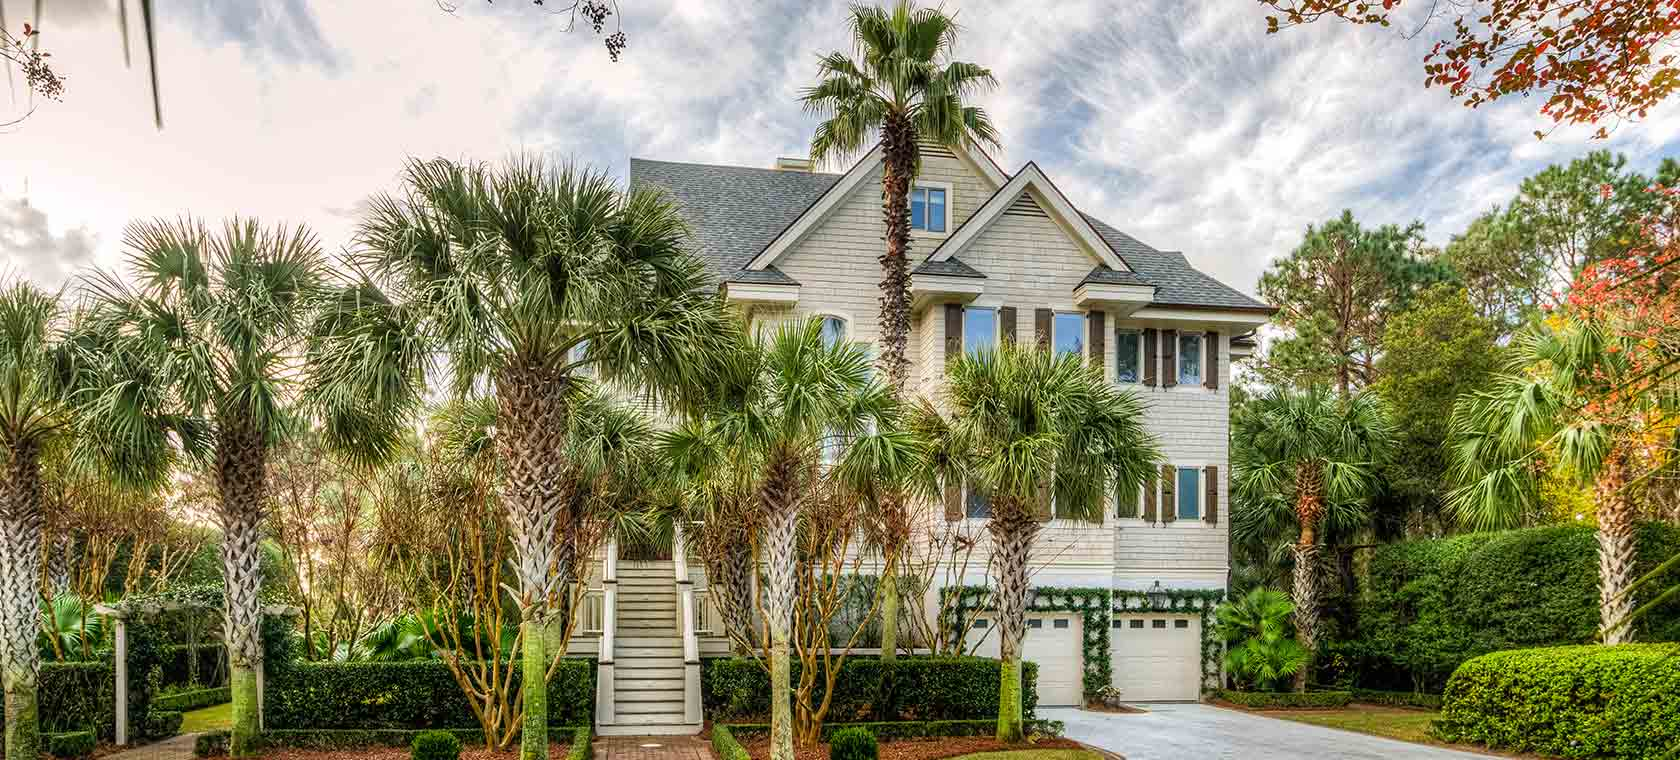 Mansion Global Features 100 Flyway Drive in Luxury Lowcountry Living